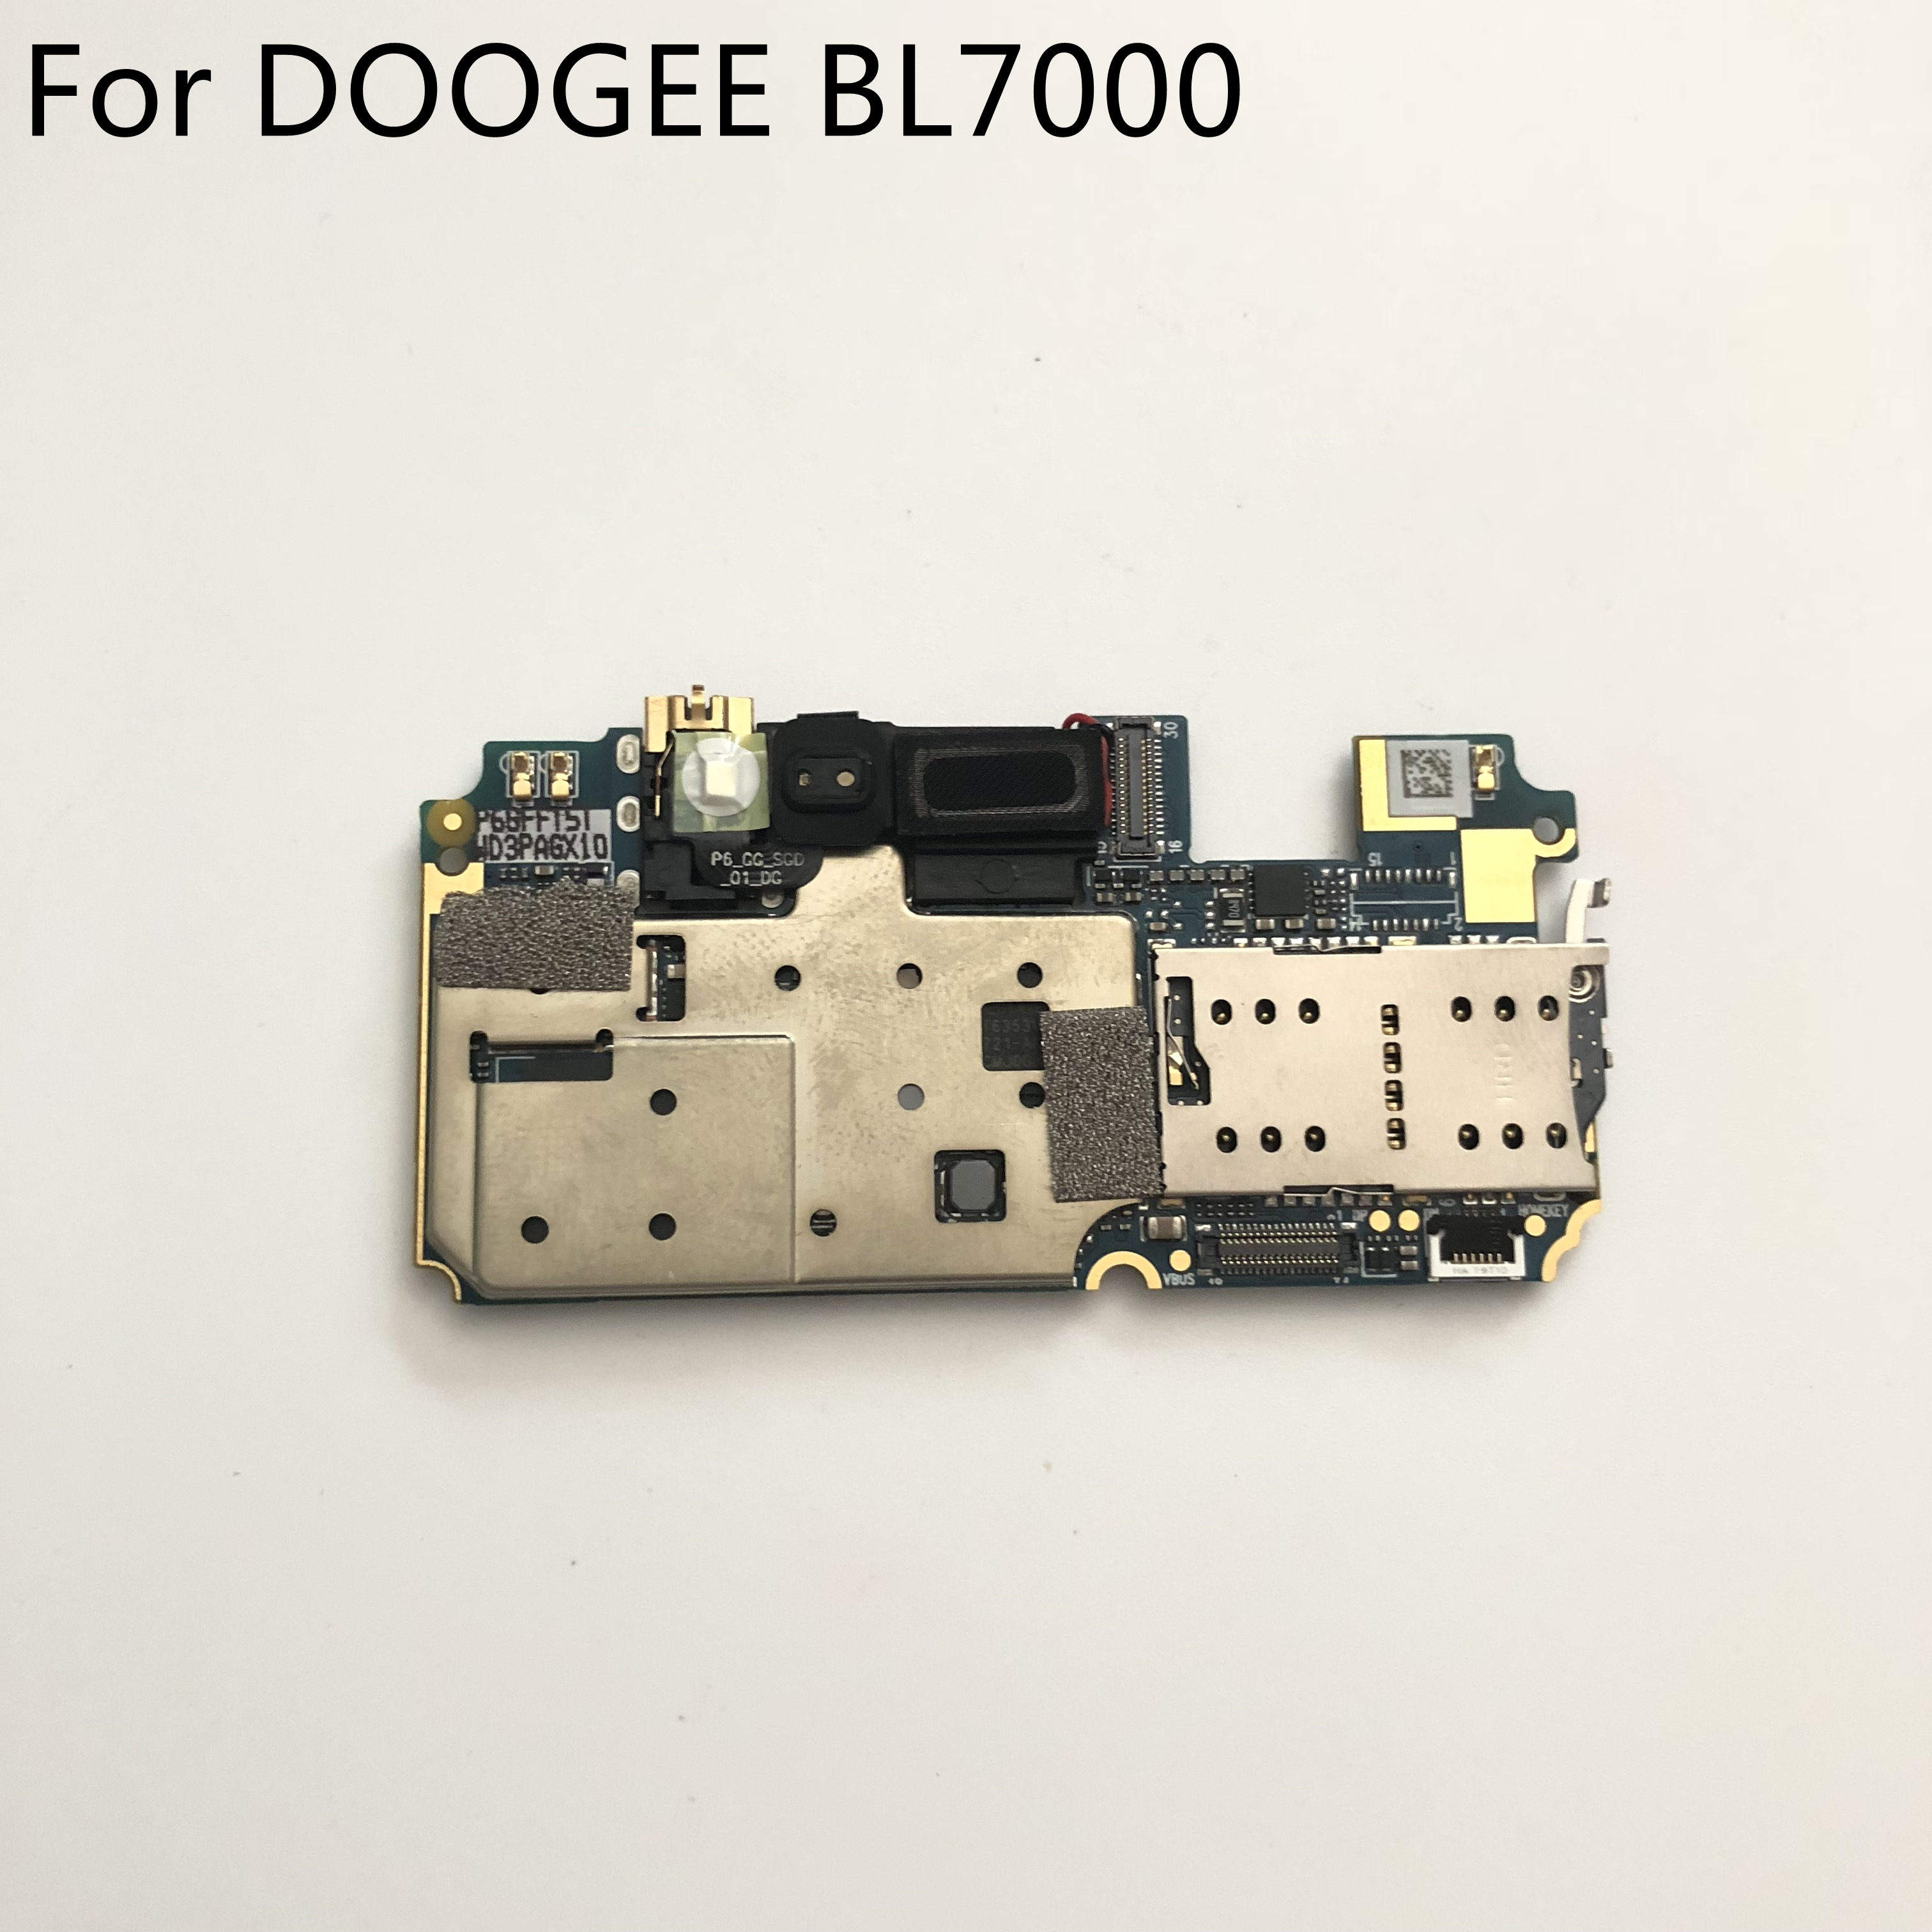 Used DOOGEE BL7000 Mainboard 4G RAM+64G ROM Motherboard For DOOGEE BL7000 MTK6750T Octa Core 5.5'' FHD 1920x1080